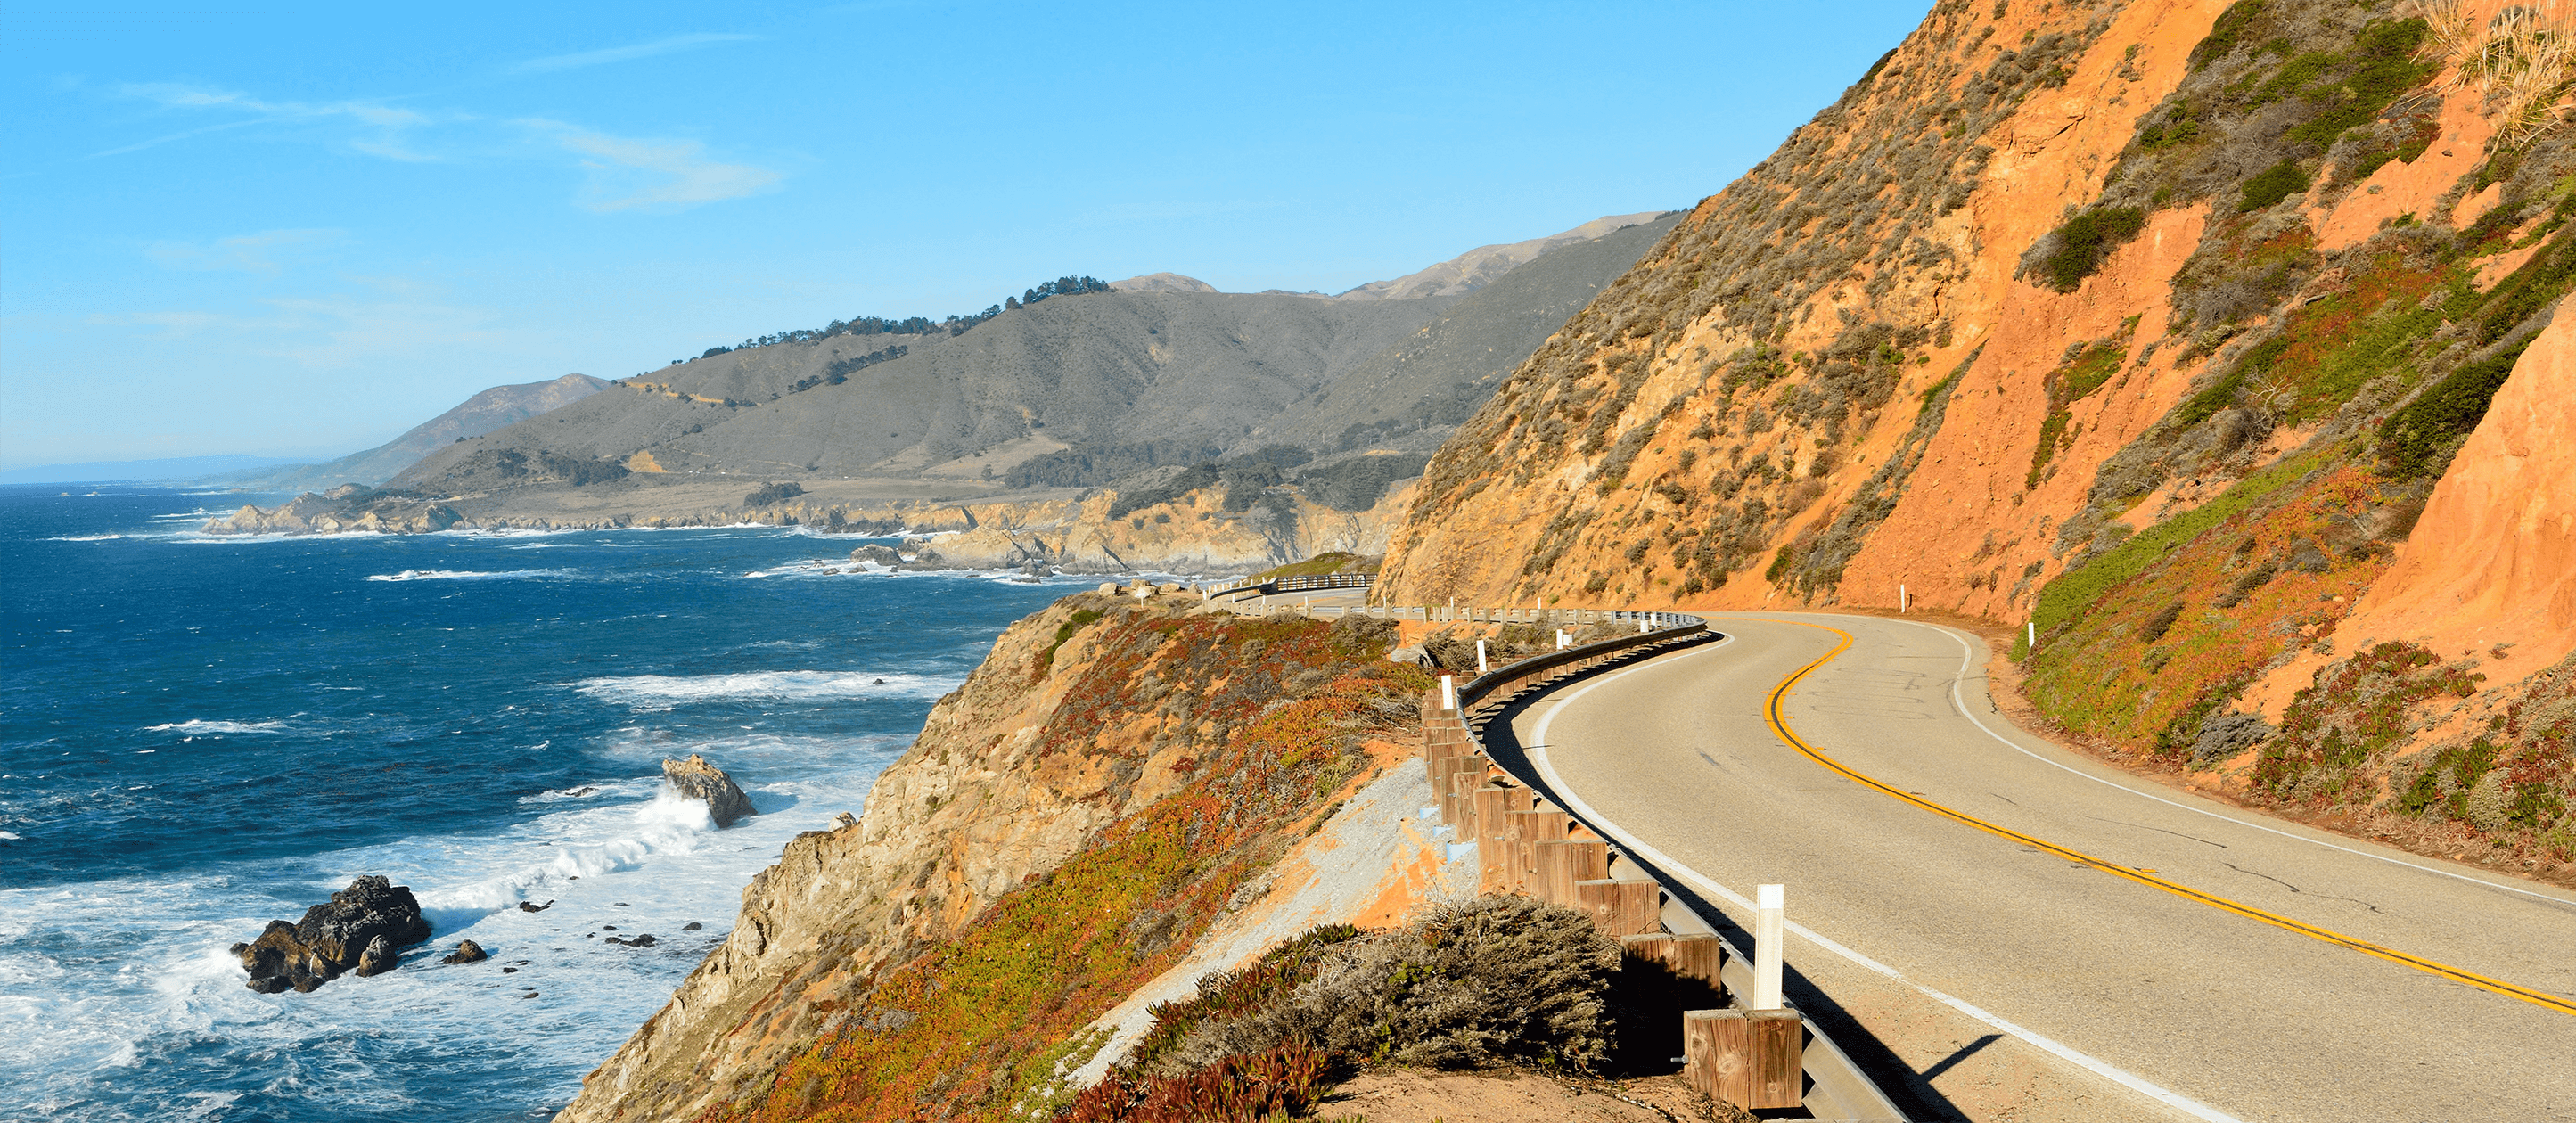 Image of winding road along the ocean with mountains in distance